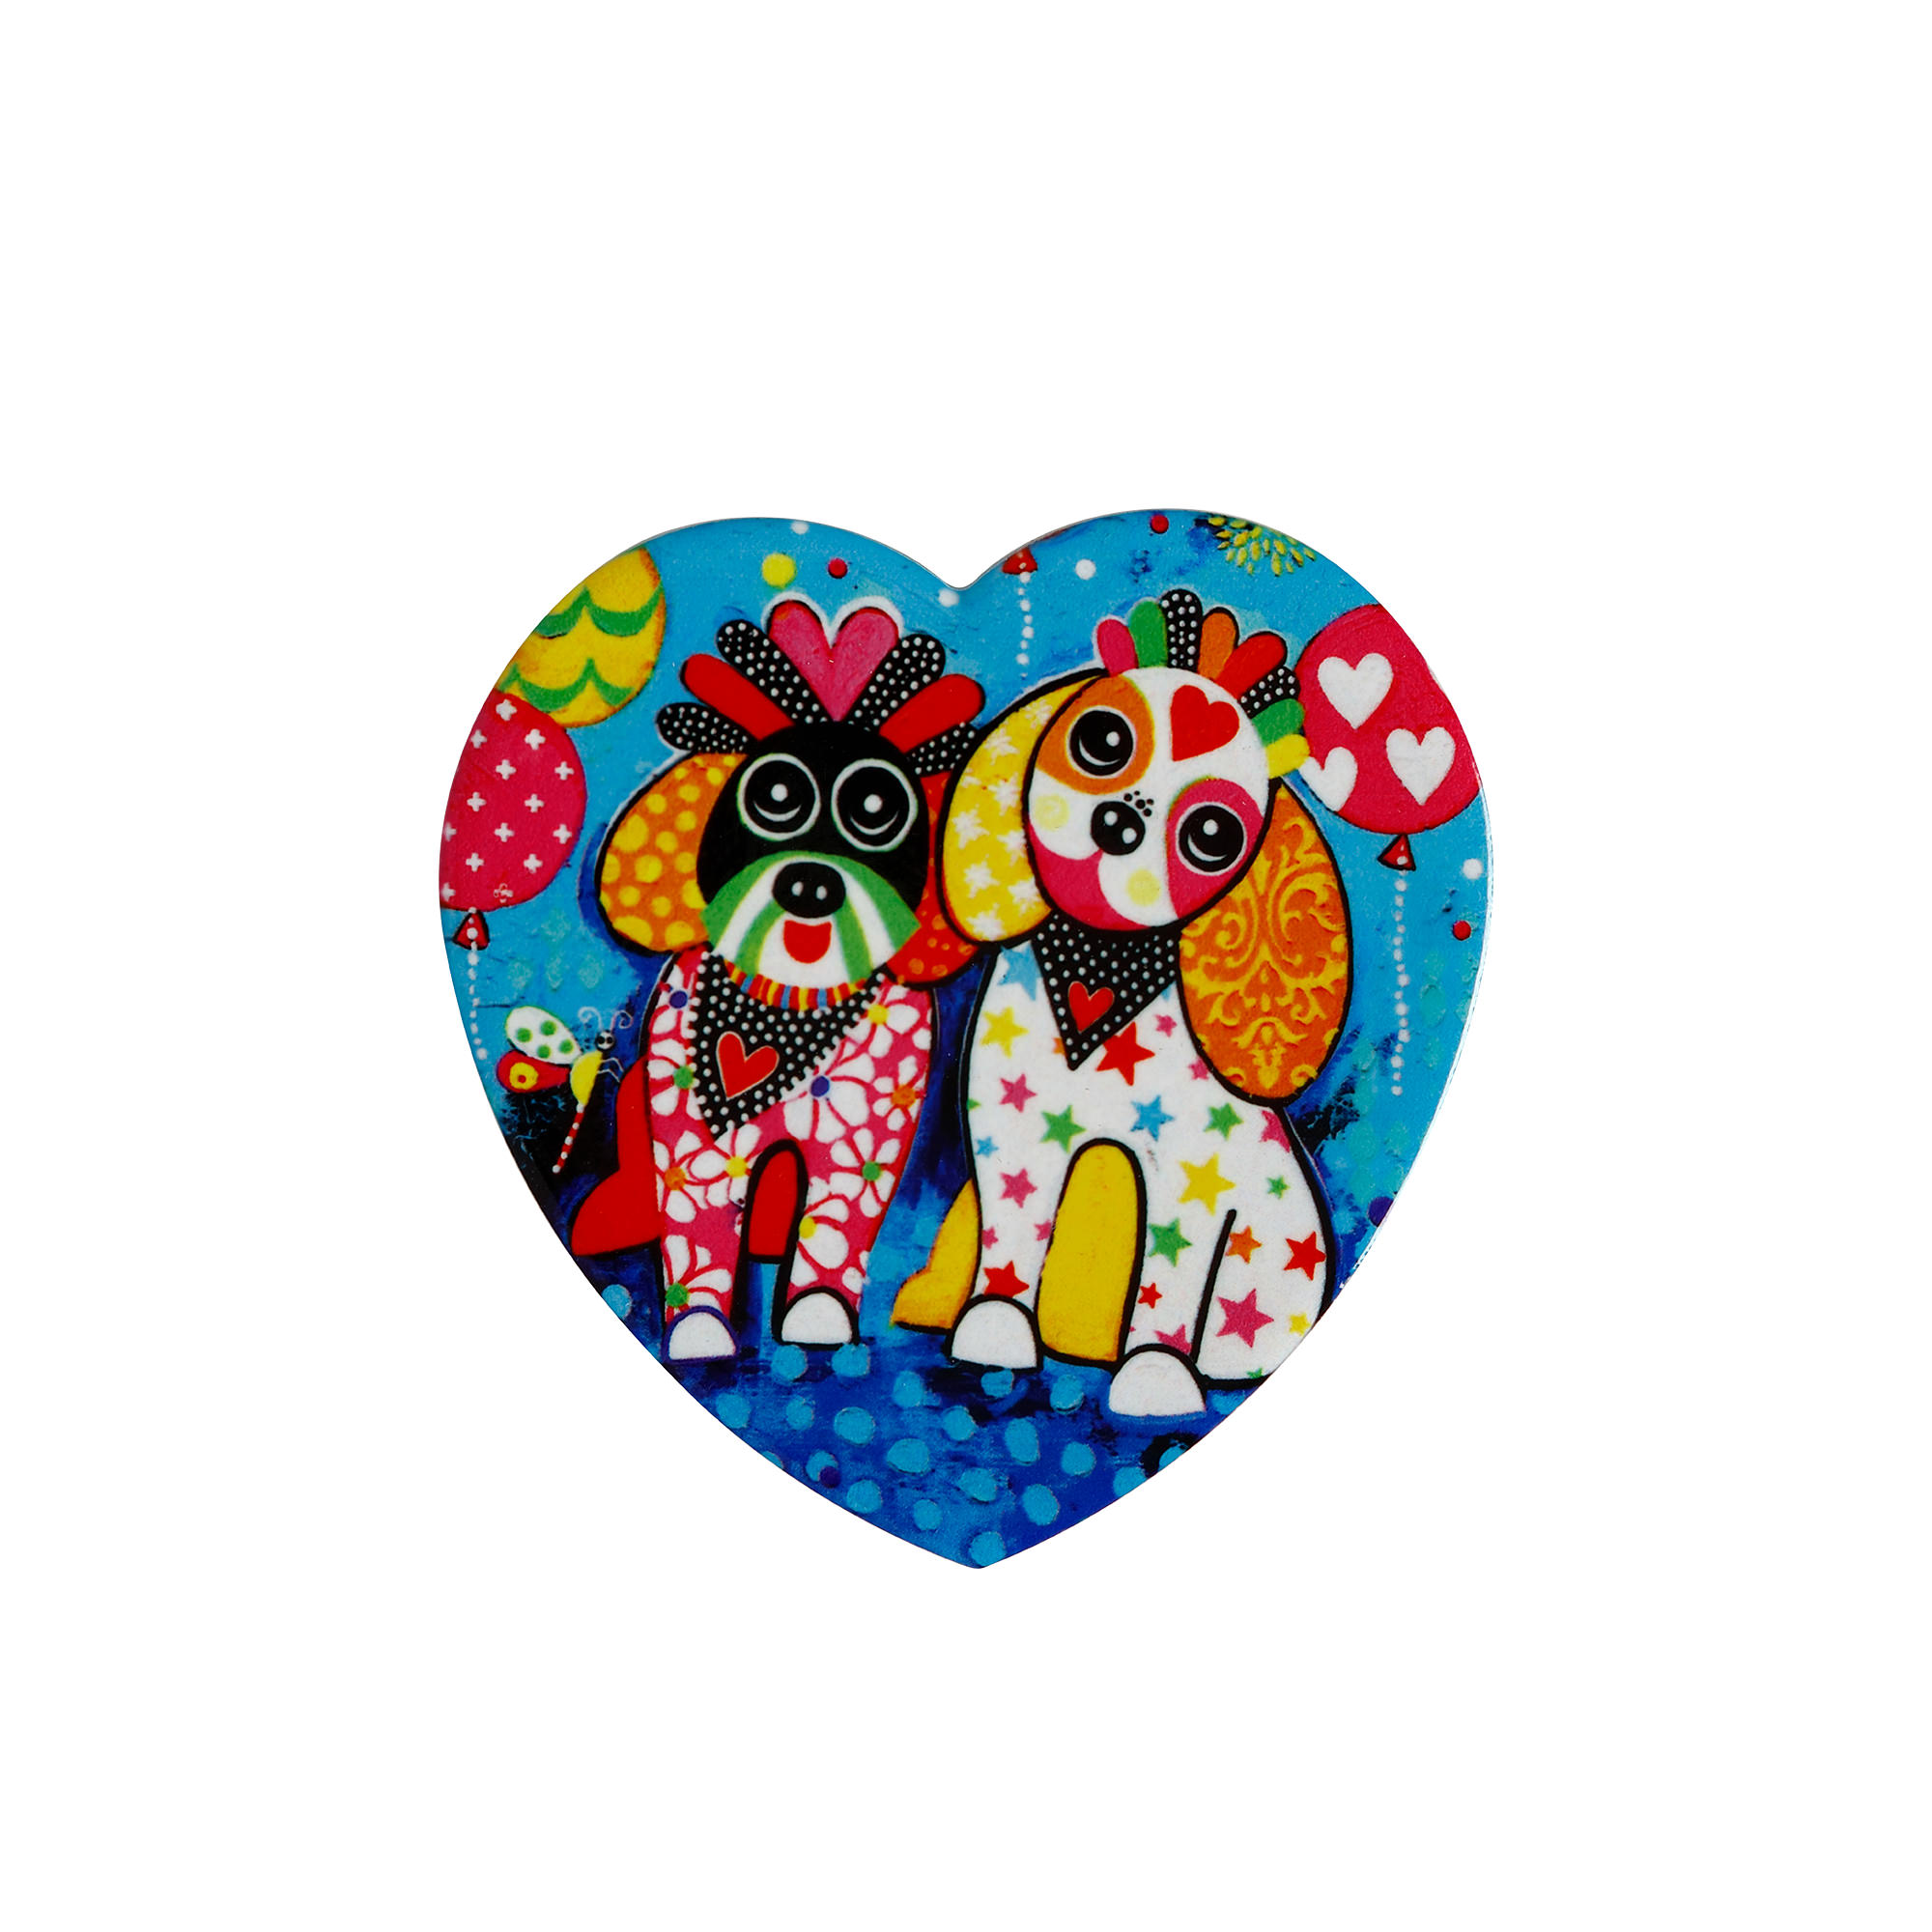 Maxwell & Williams Love Hearts Heart Shaped Coaster Oodles Of Love